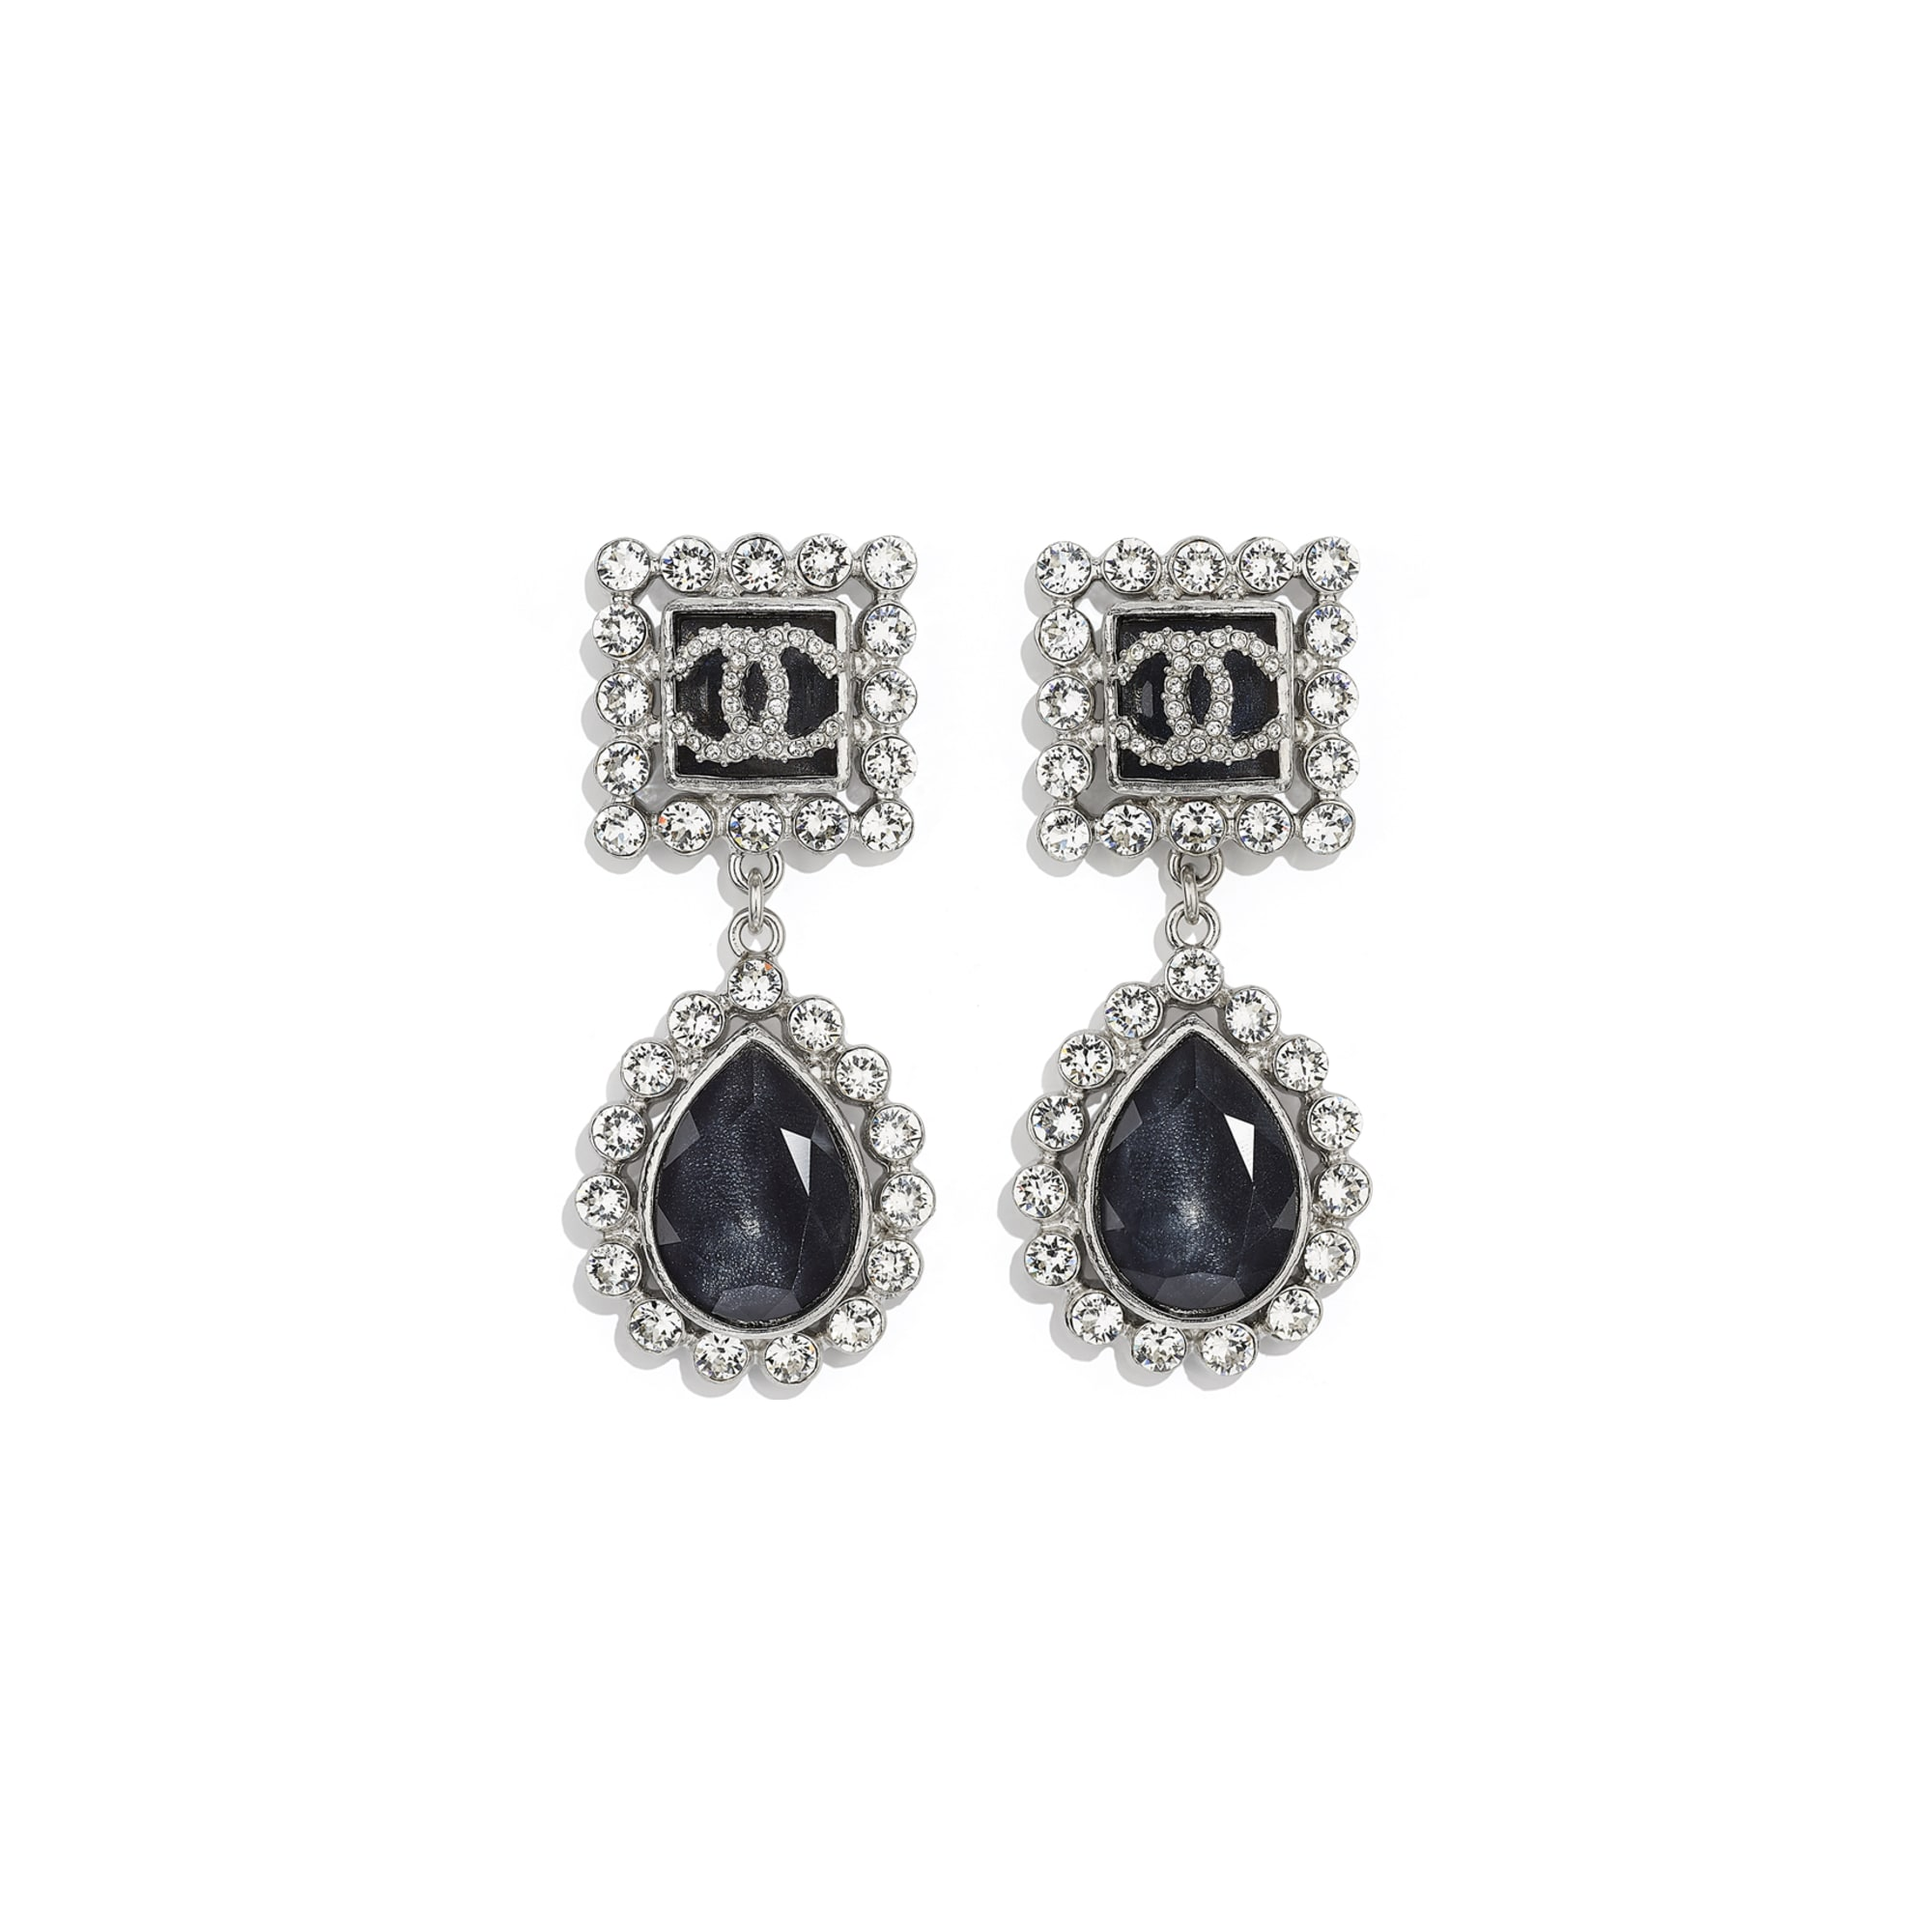 Earrings - Silver, Black, Blue & Crystal - Metal, Glass & Diamanté - CHANEL - Default view - see standard sized version